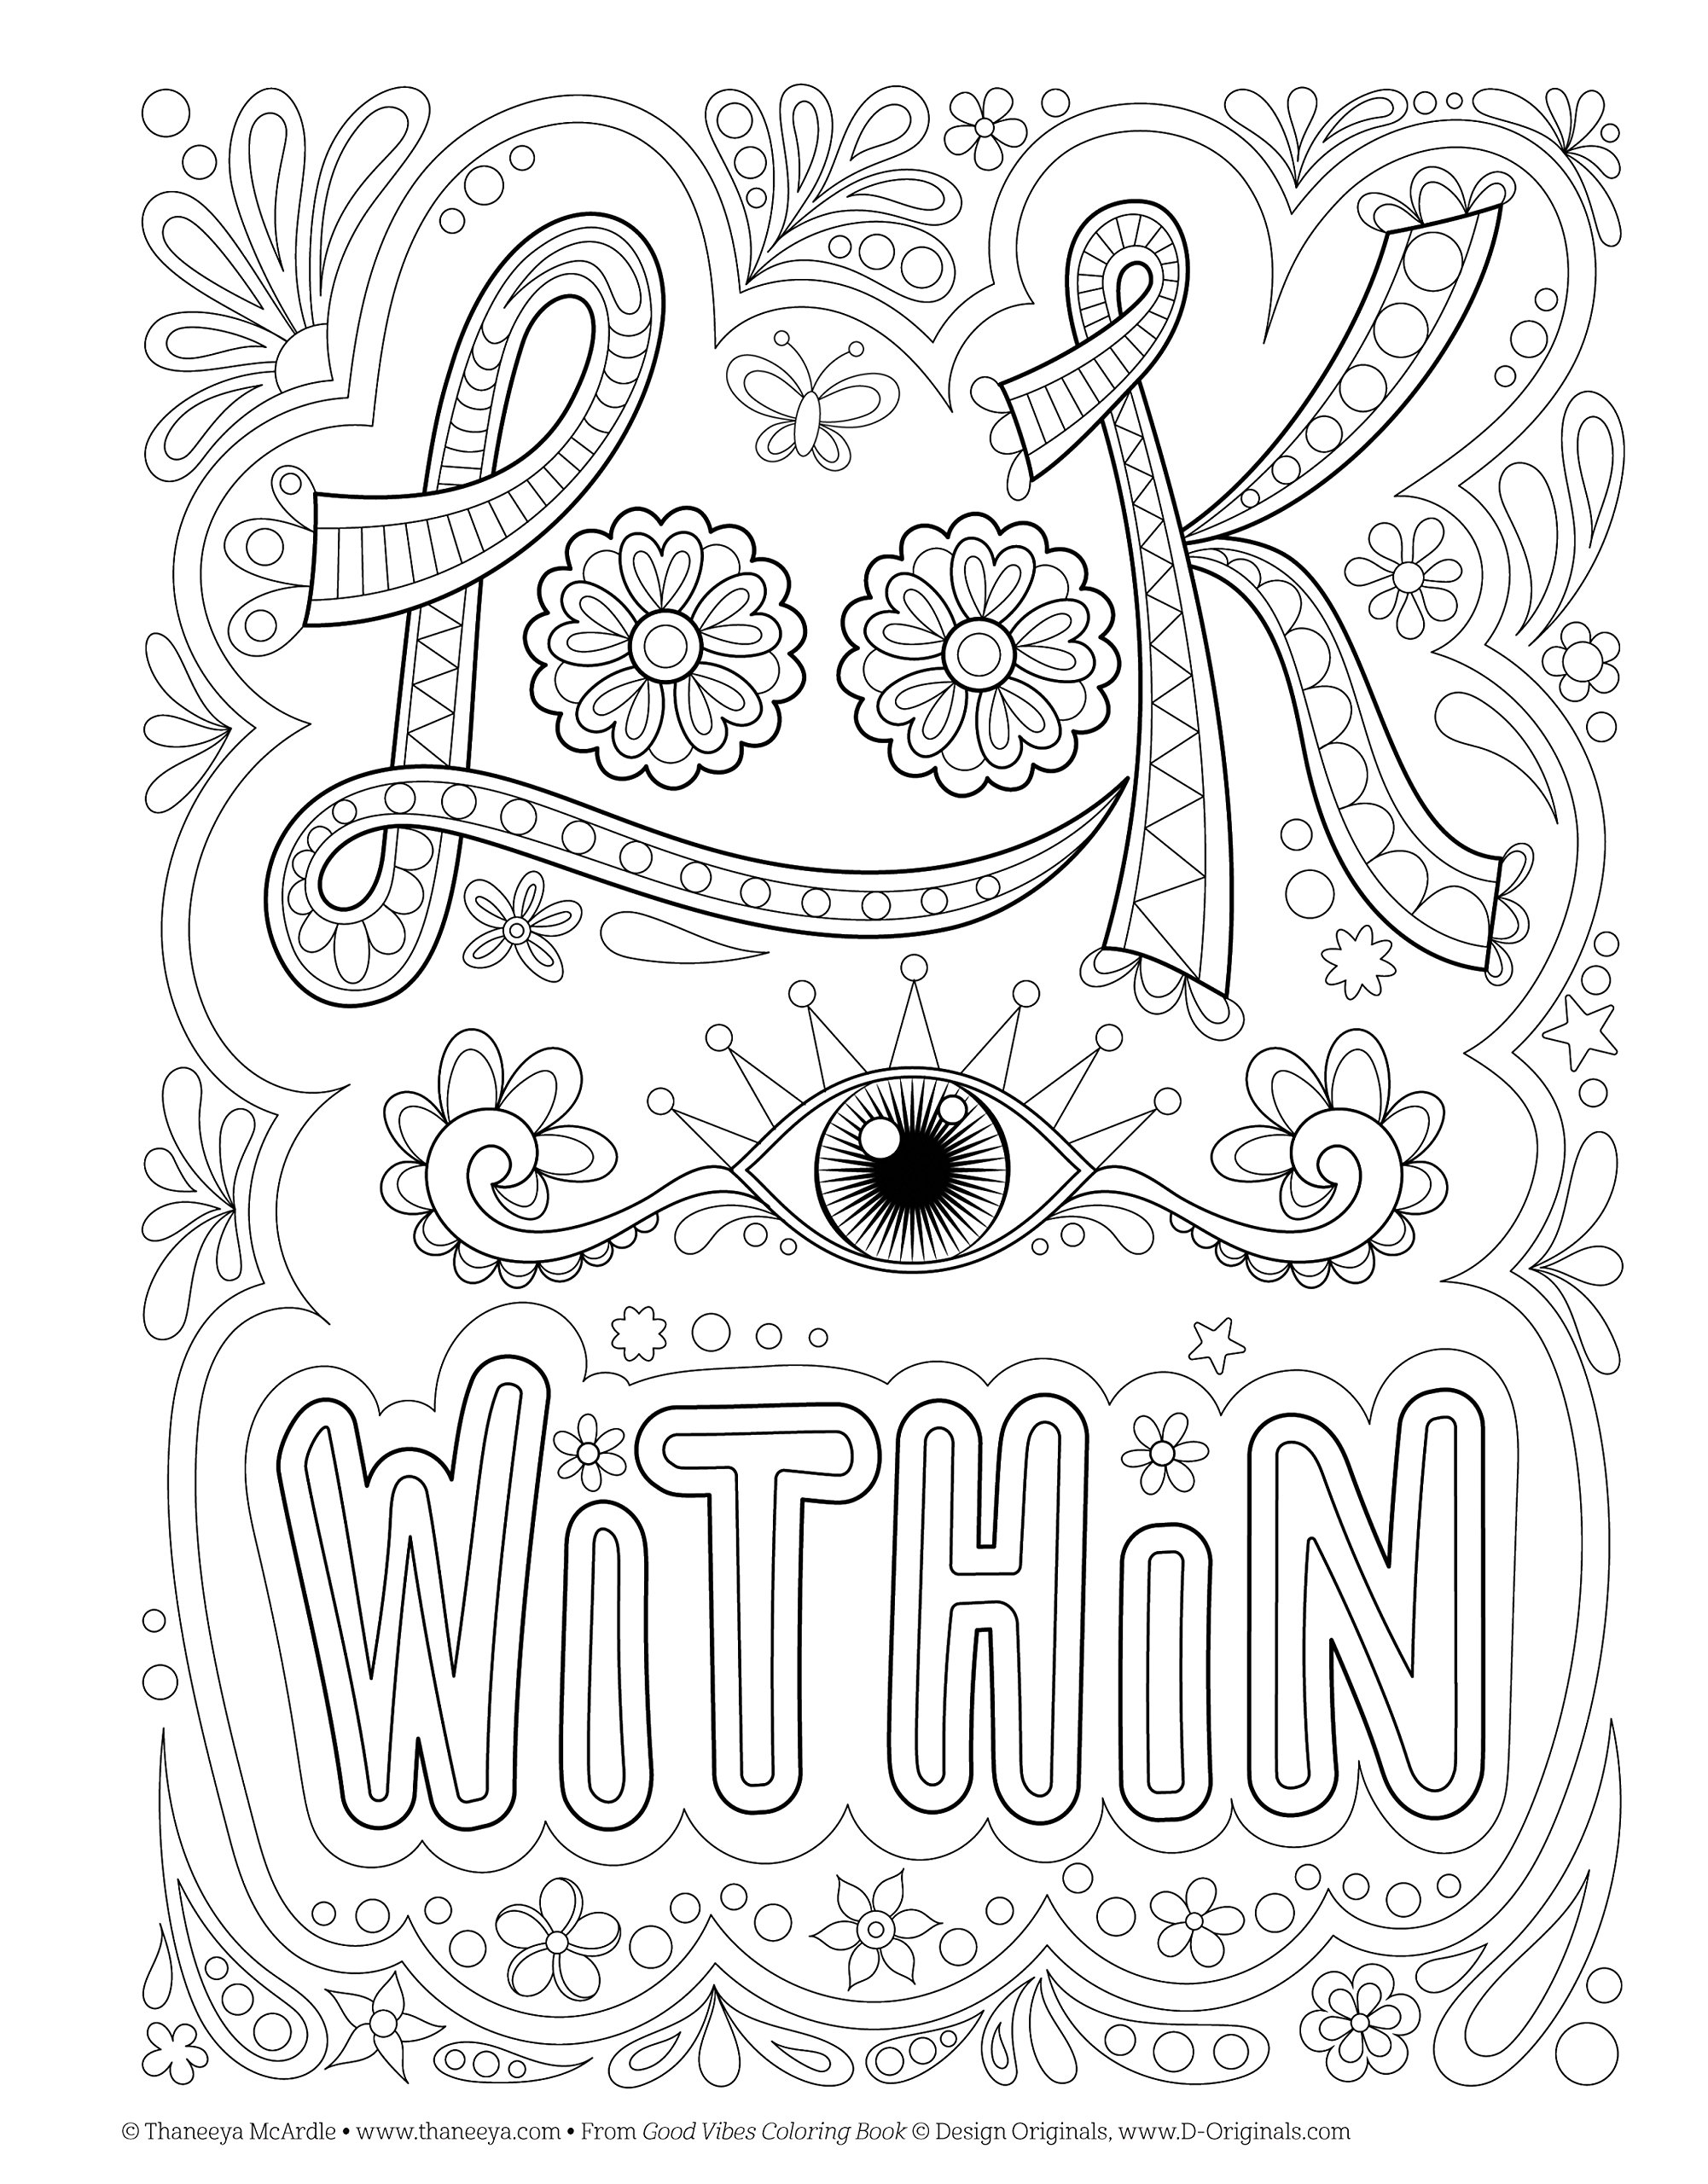 Good Vibes Coloring Book (Coloring is Fun) (Design Originals ...